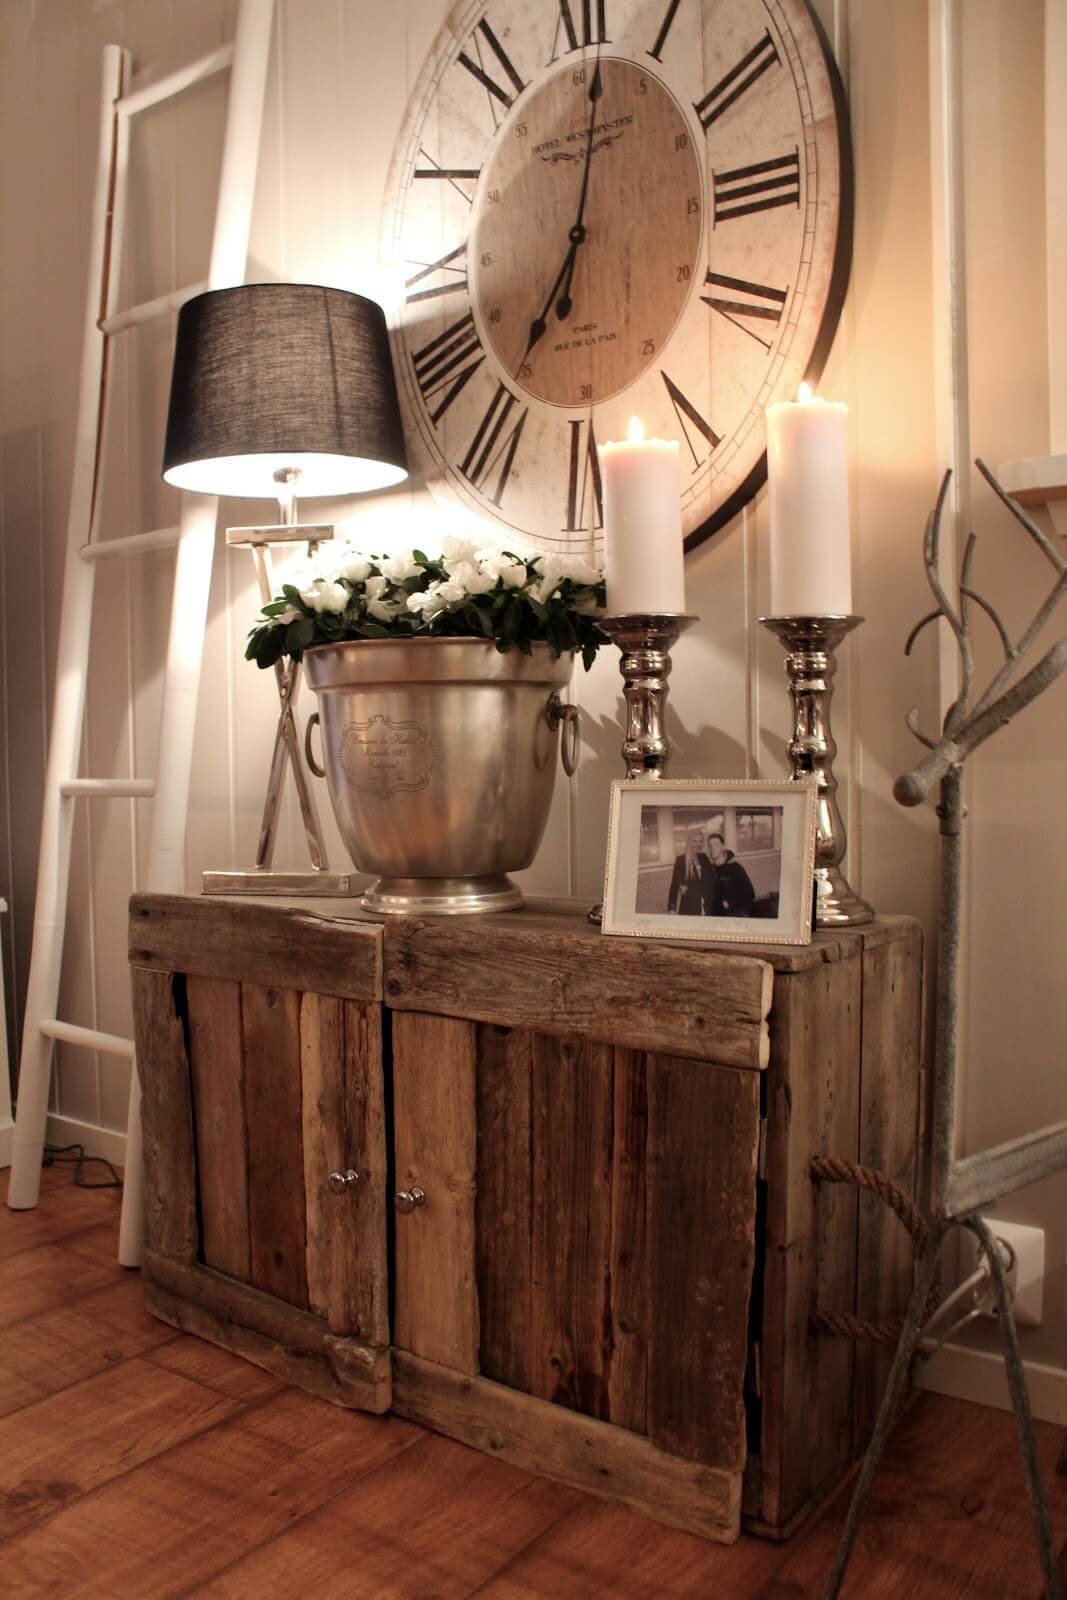 Rustic Entryway Decorating, modern entryway decor ideas, entryway decor elegant, small entryway decor